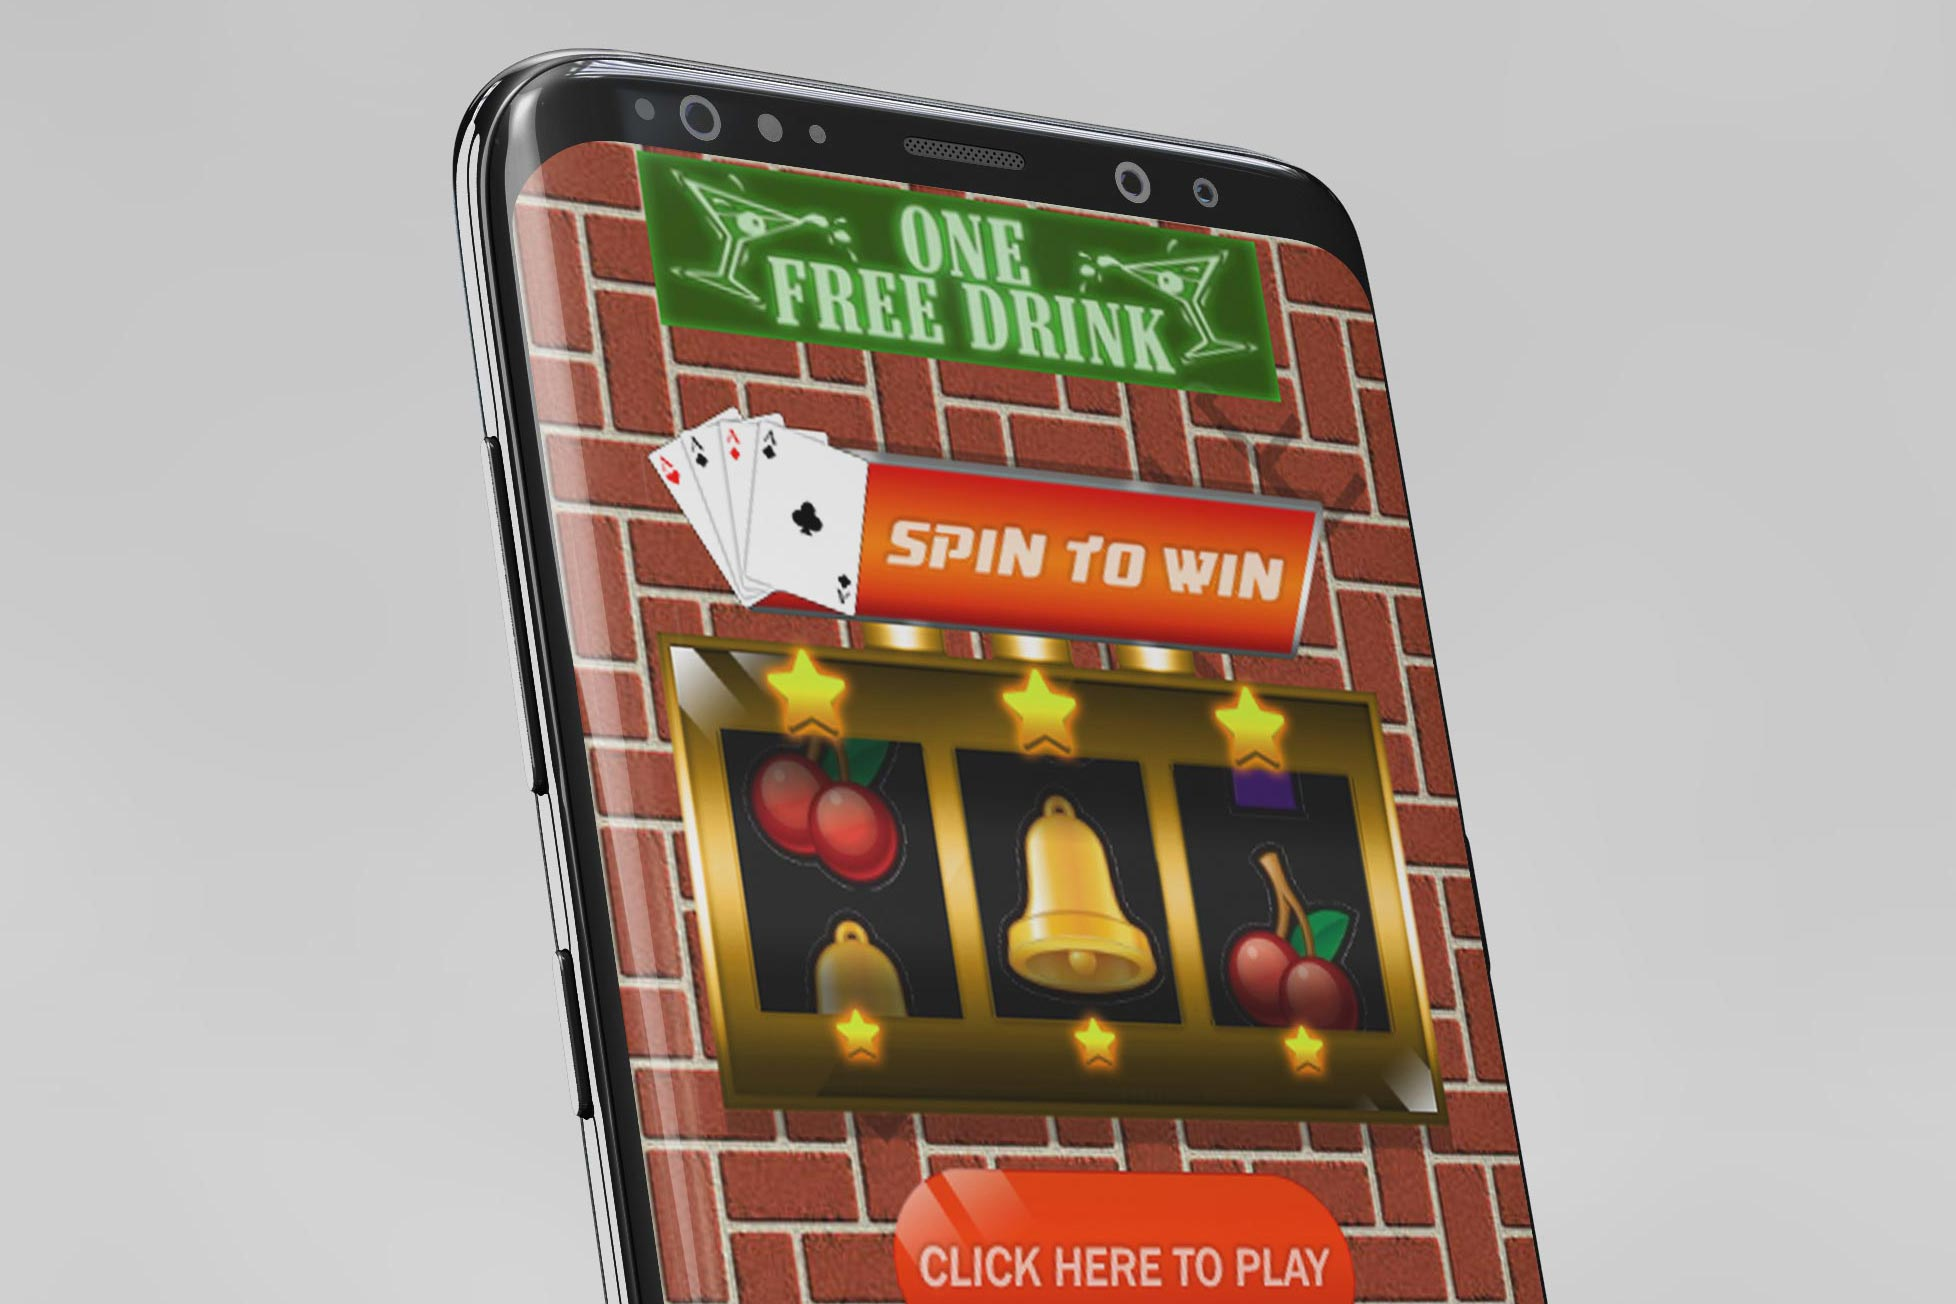 7 Tips for Successful Mobile Casino Marketing